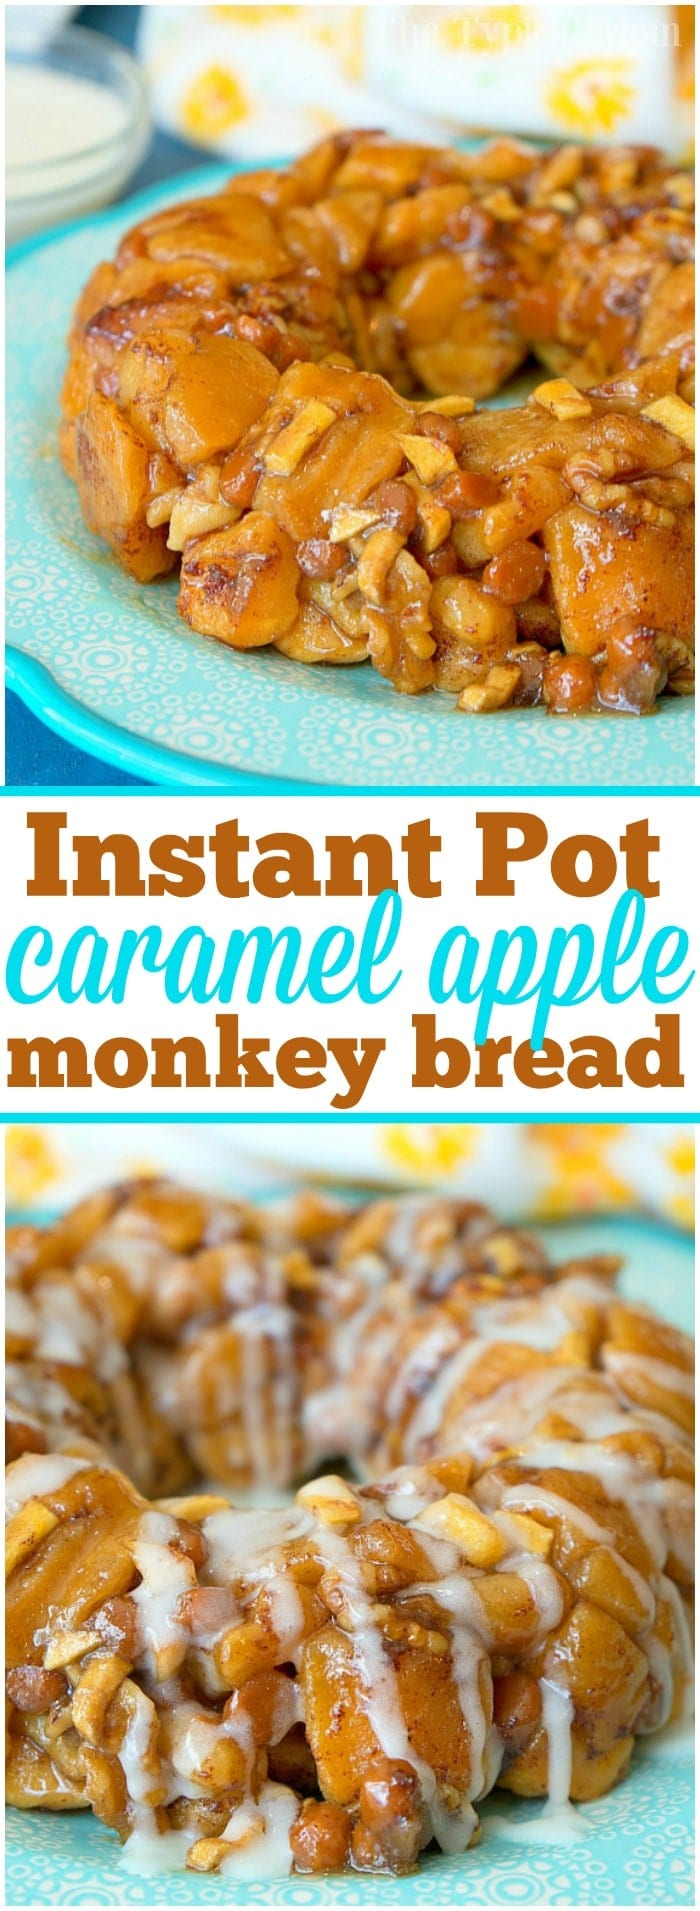 This sticky Instant Pot caramel apple monkey bread is so addicting and easy to make with ready made cinnamon rolls! Just 22 minutes in your pressure cooker makes this sweet caramel apple pull apart bread your whole family will love! If it's hot and you're not about to turn on your oven this is the new way to bake! #instantpot #pressurecooker #monkeybread #dessert #caramel #cake #bundt #cinnamonrolls